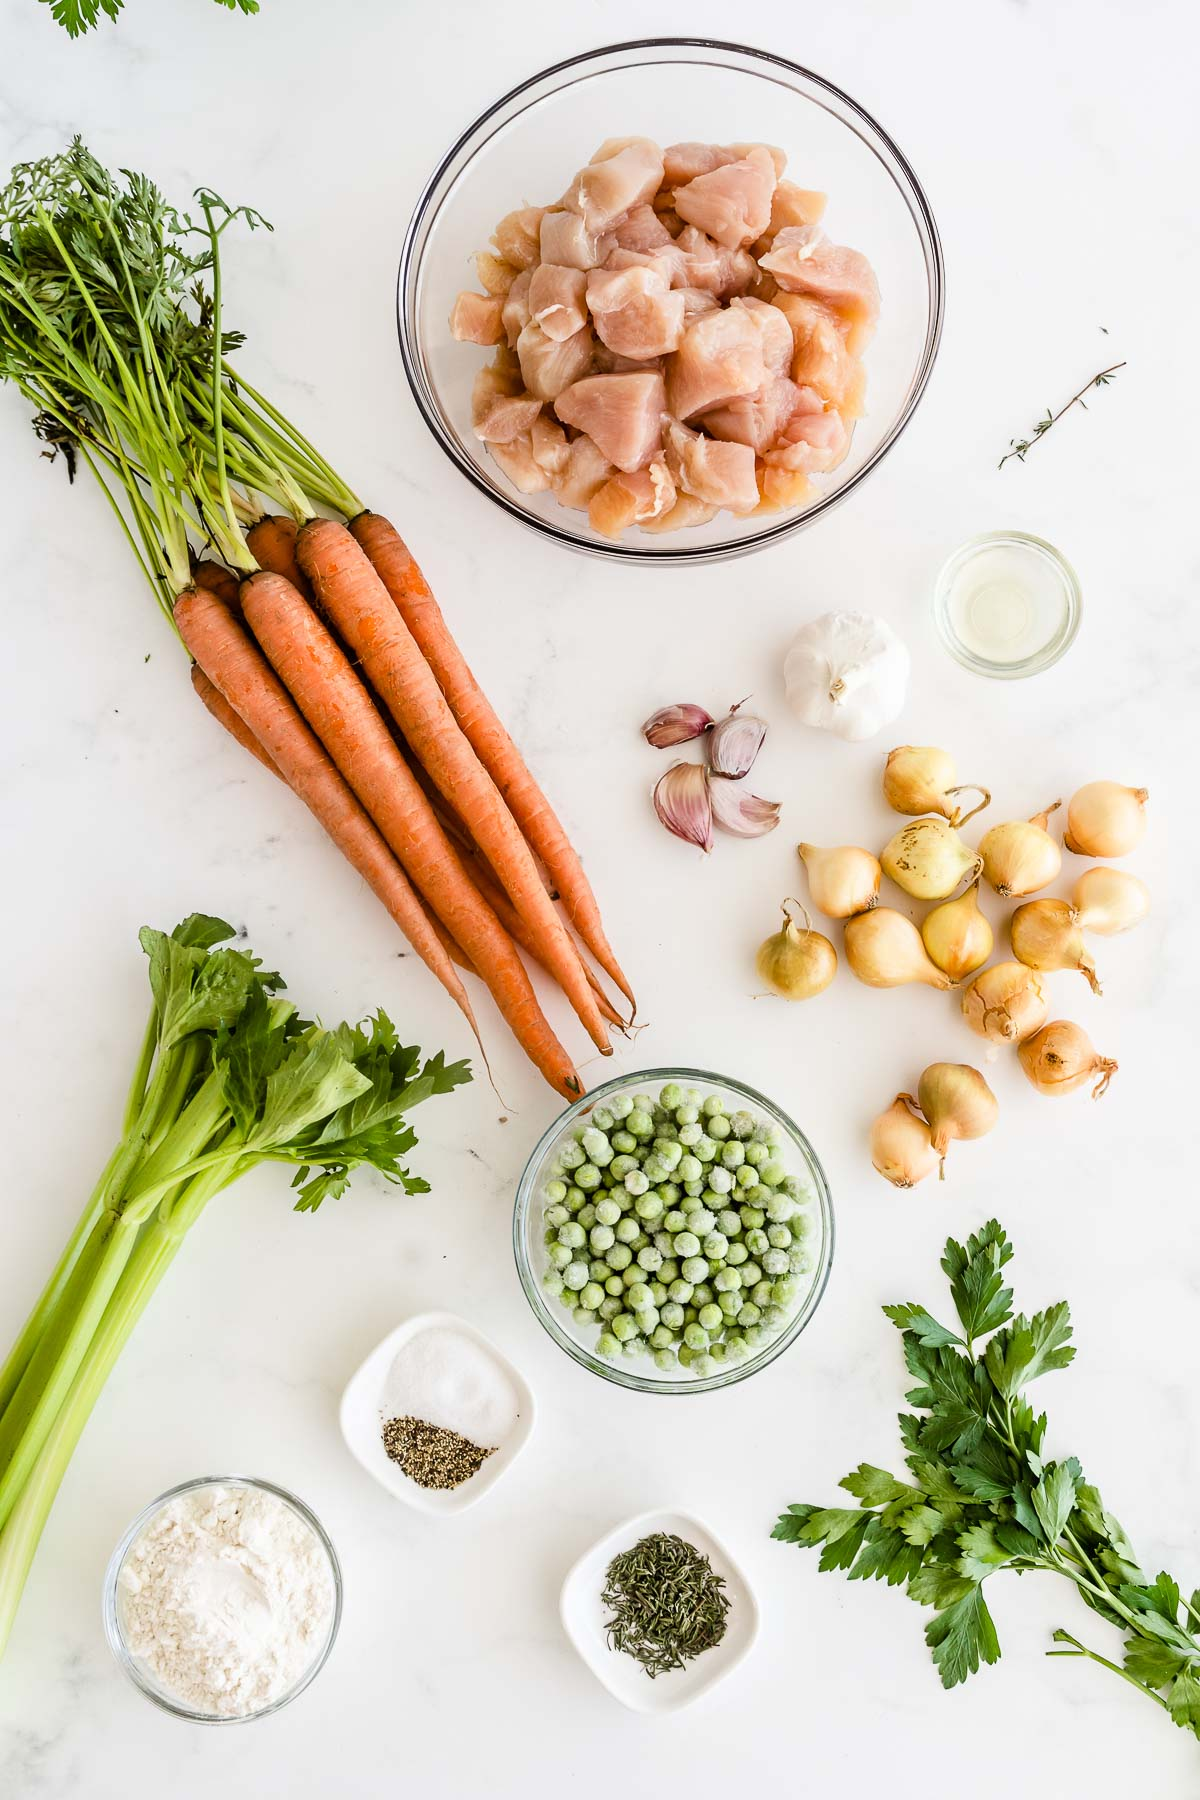 a glass bowl with raw chicken, whole carrots, celery stalks, garlic cloves, bowl of frozen peas